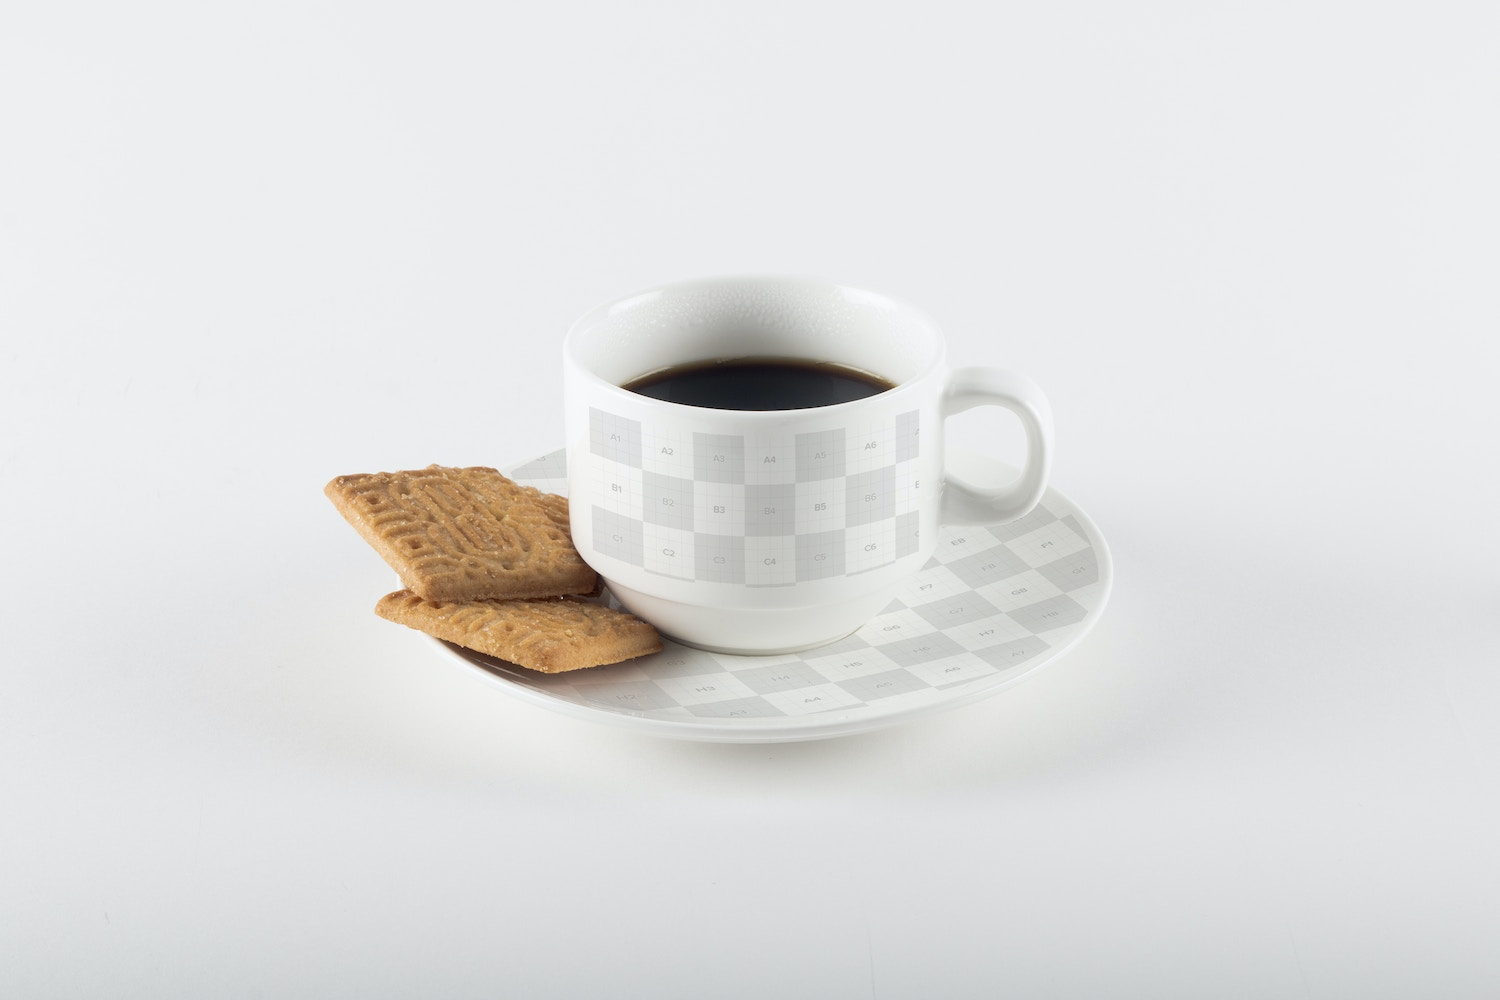 Coffee Cup with Cookies Mockup 03